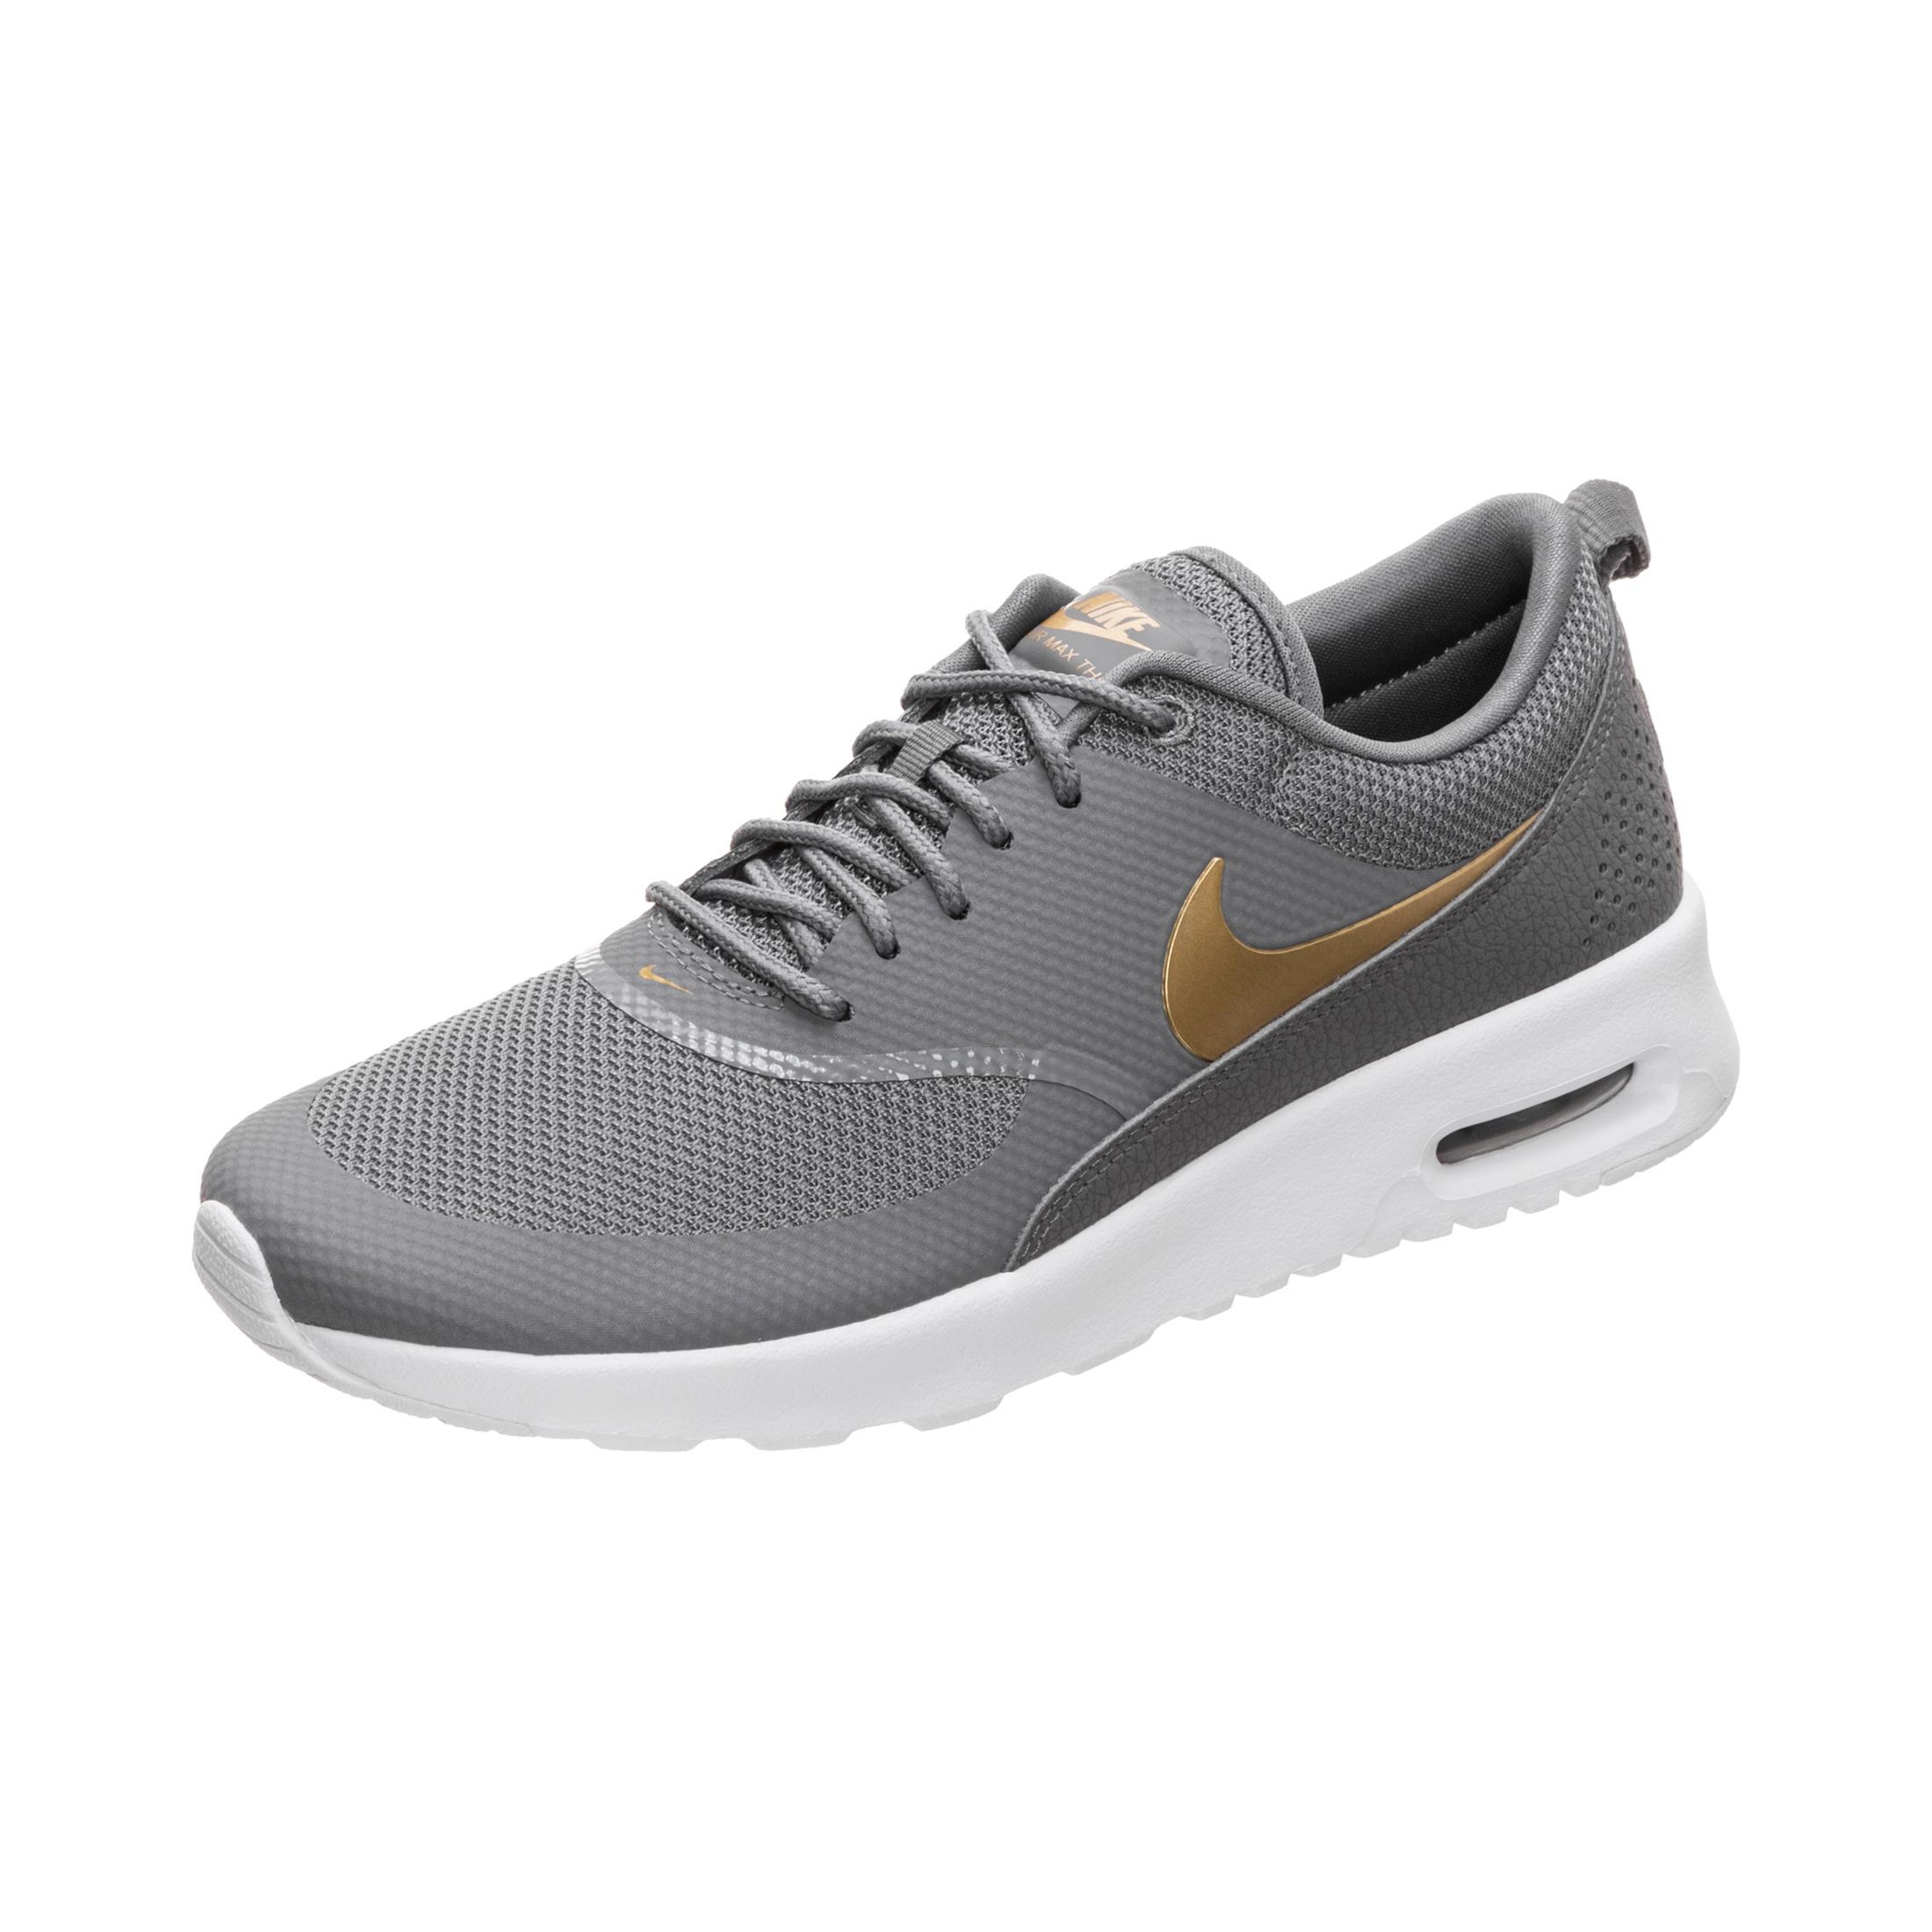 hot nike air max thea damänner grau and weiß 4a23e 43b0a